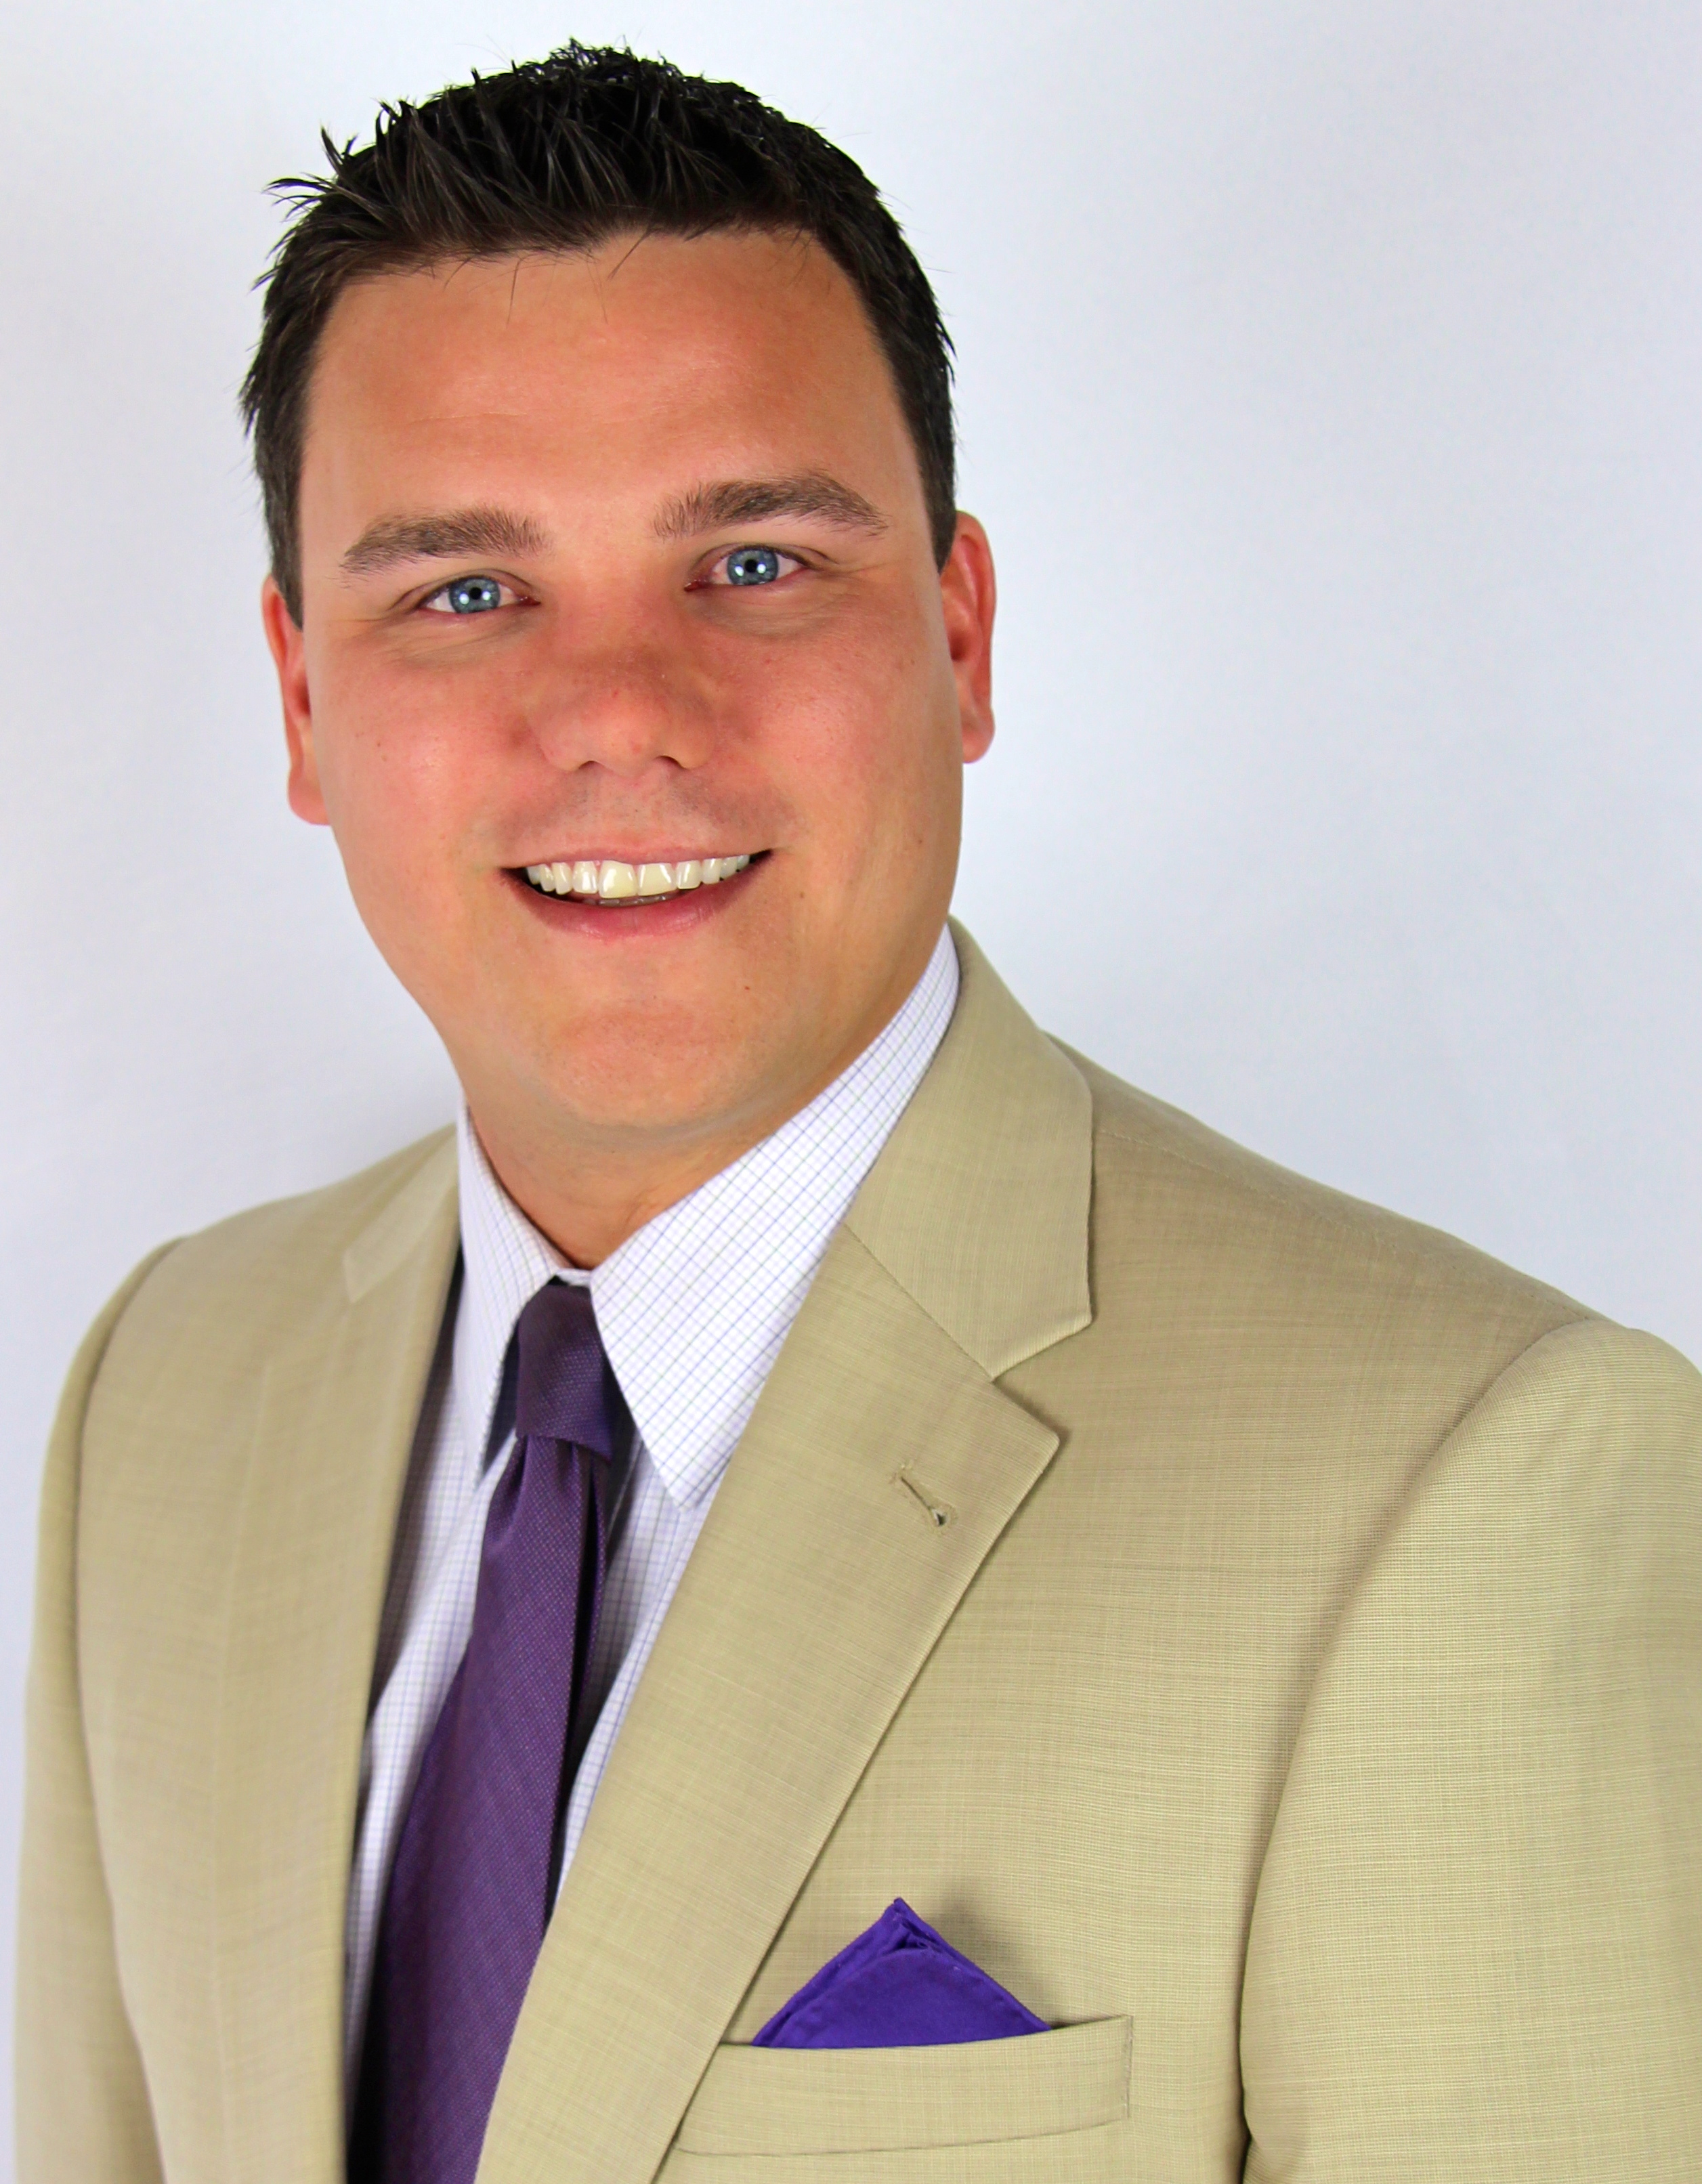 Justin Blews, financial advisor Sunrise FL